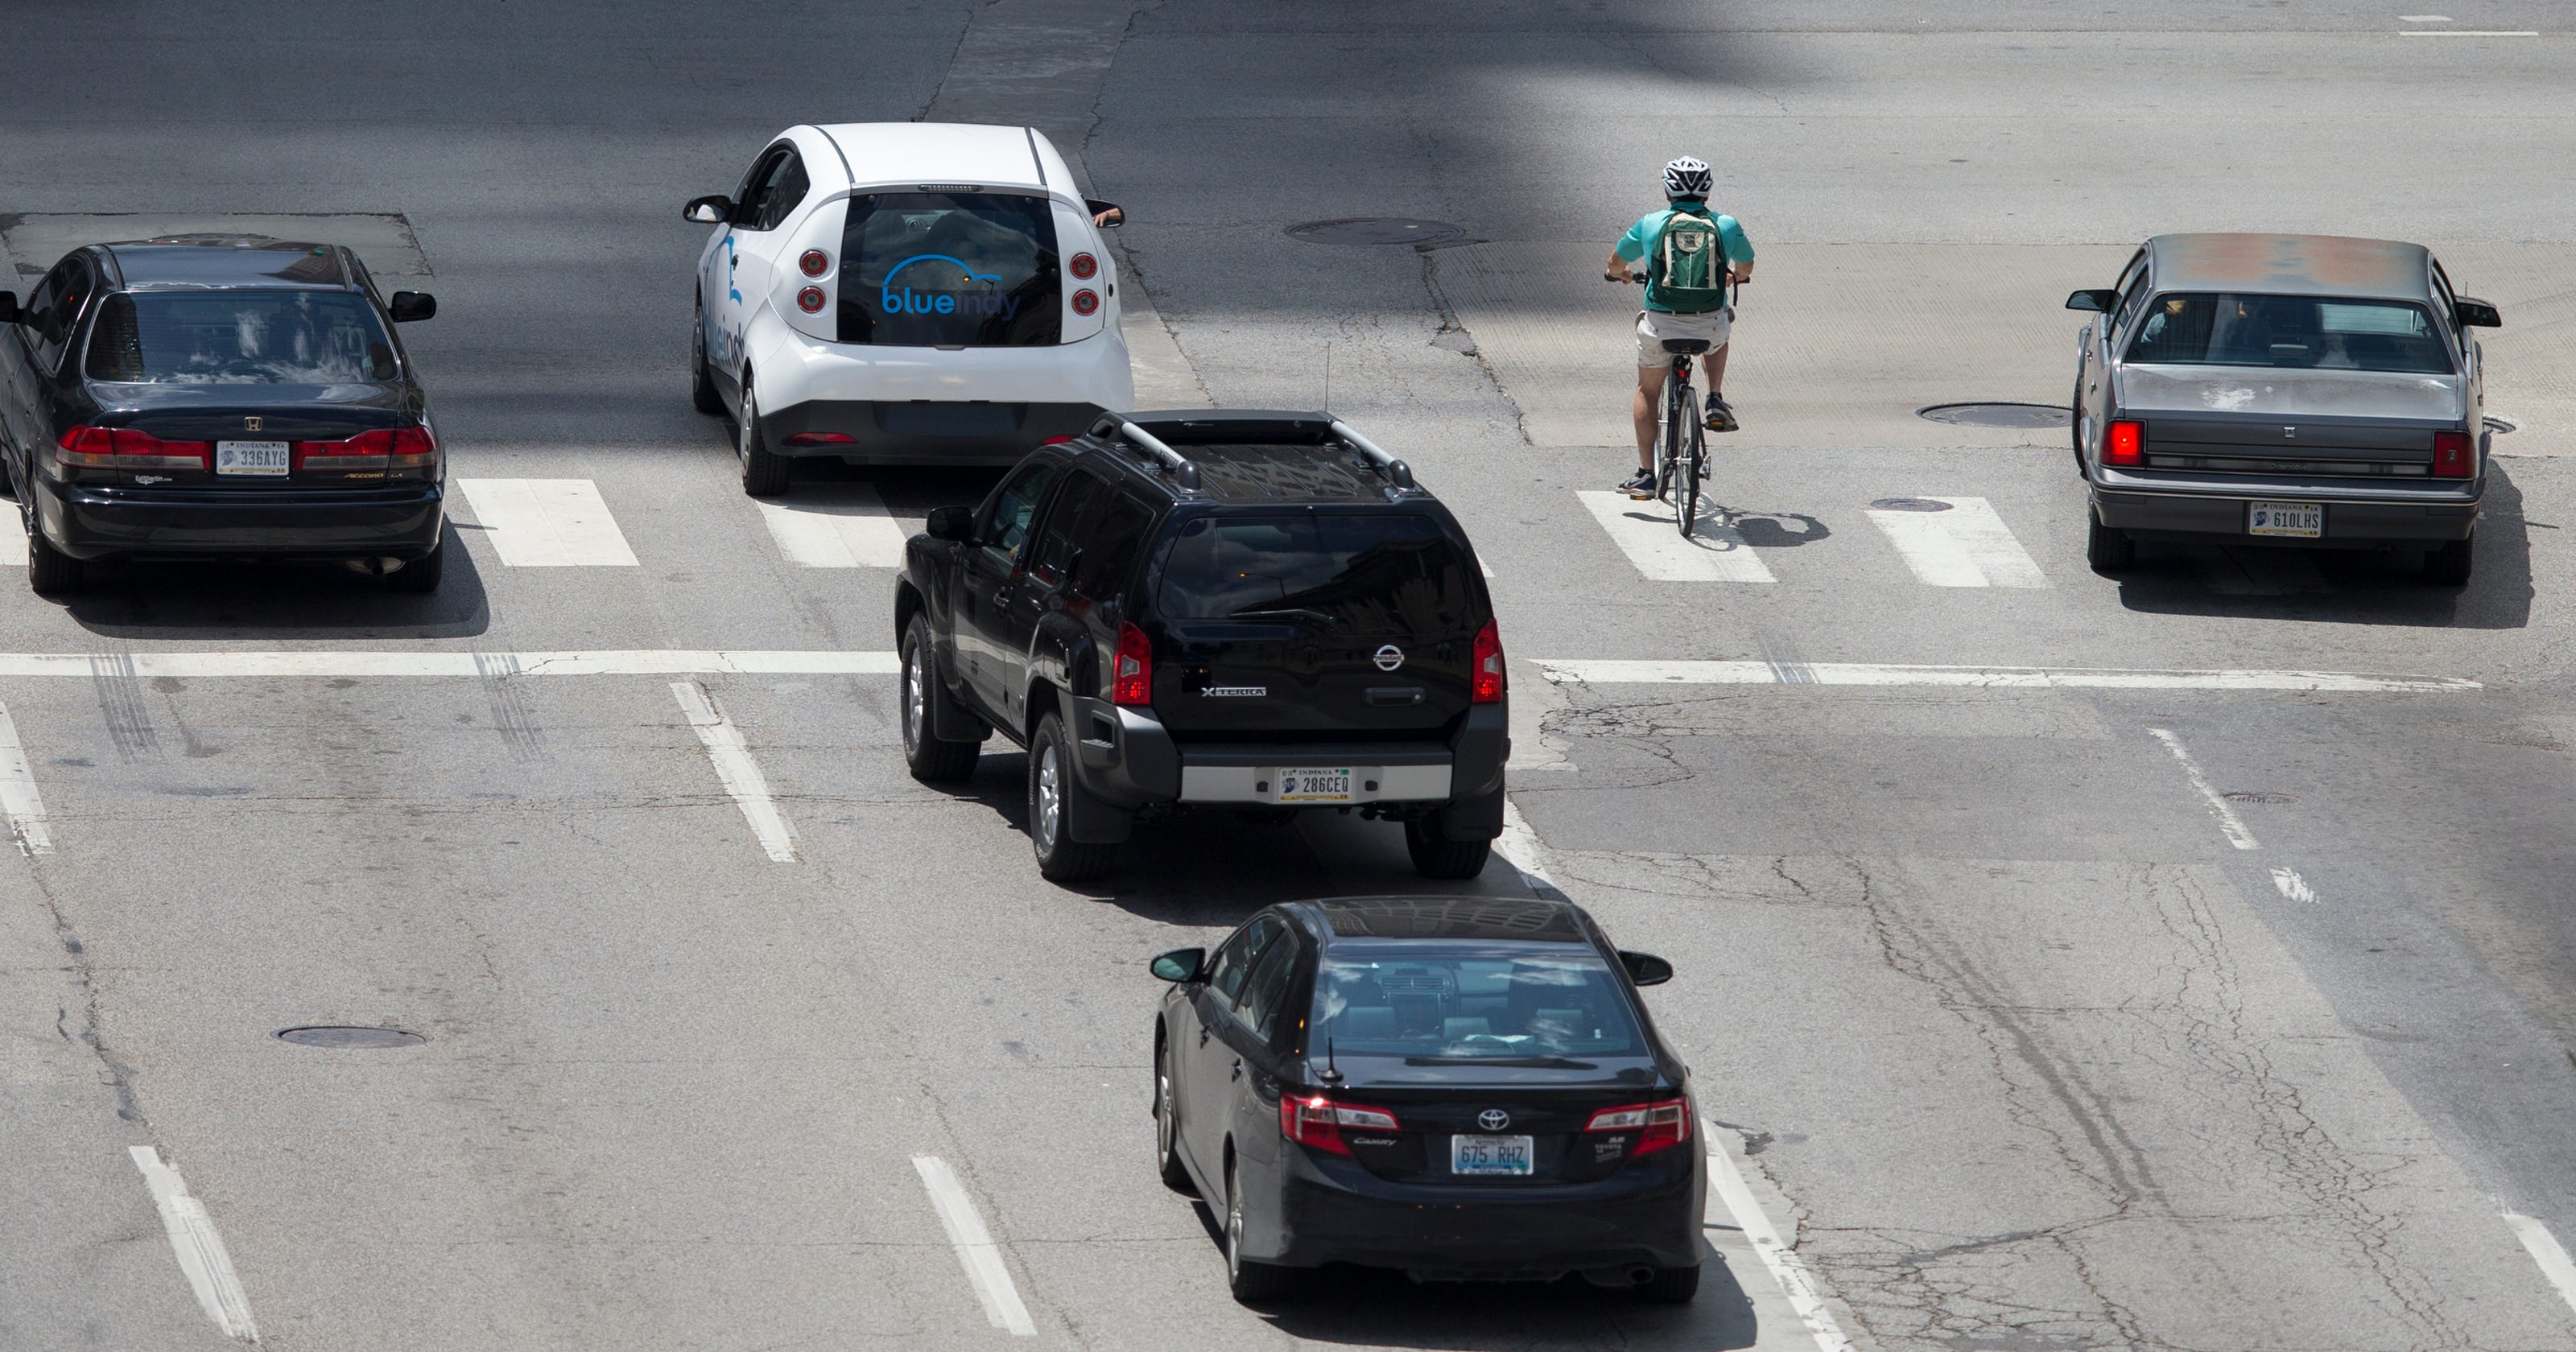 Collision course: Confusing laws vex Indiana drivers, cyclists